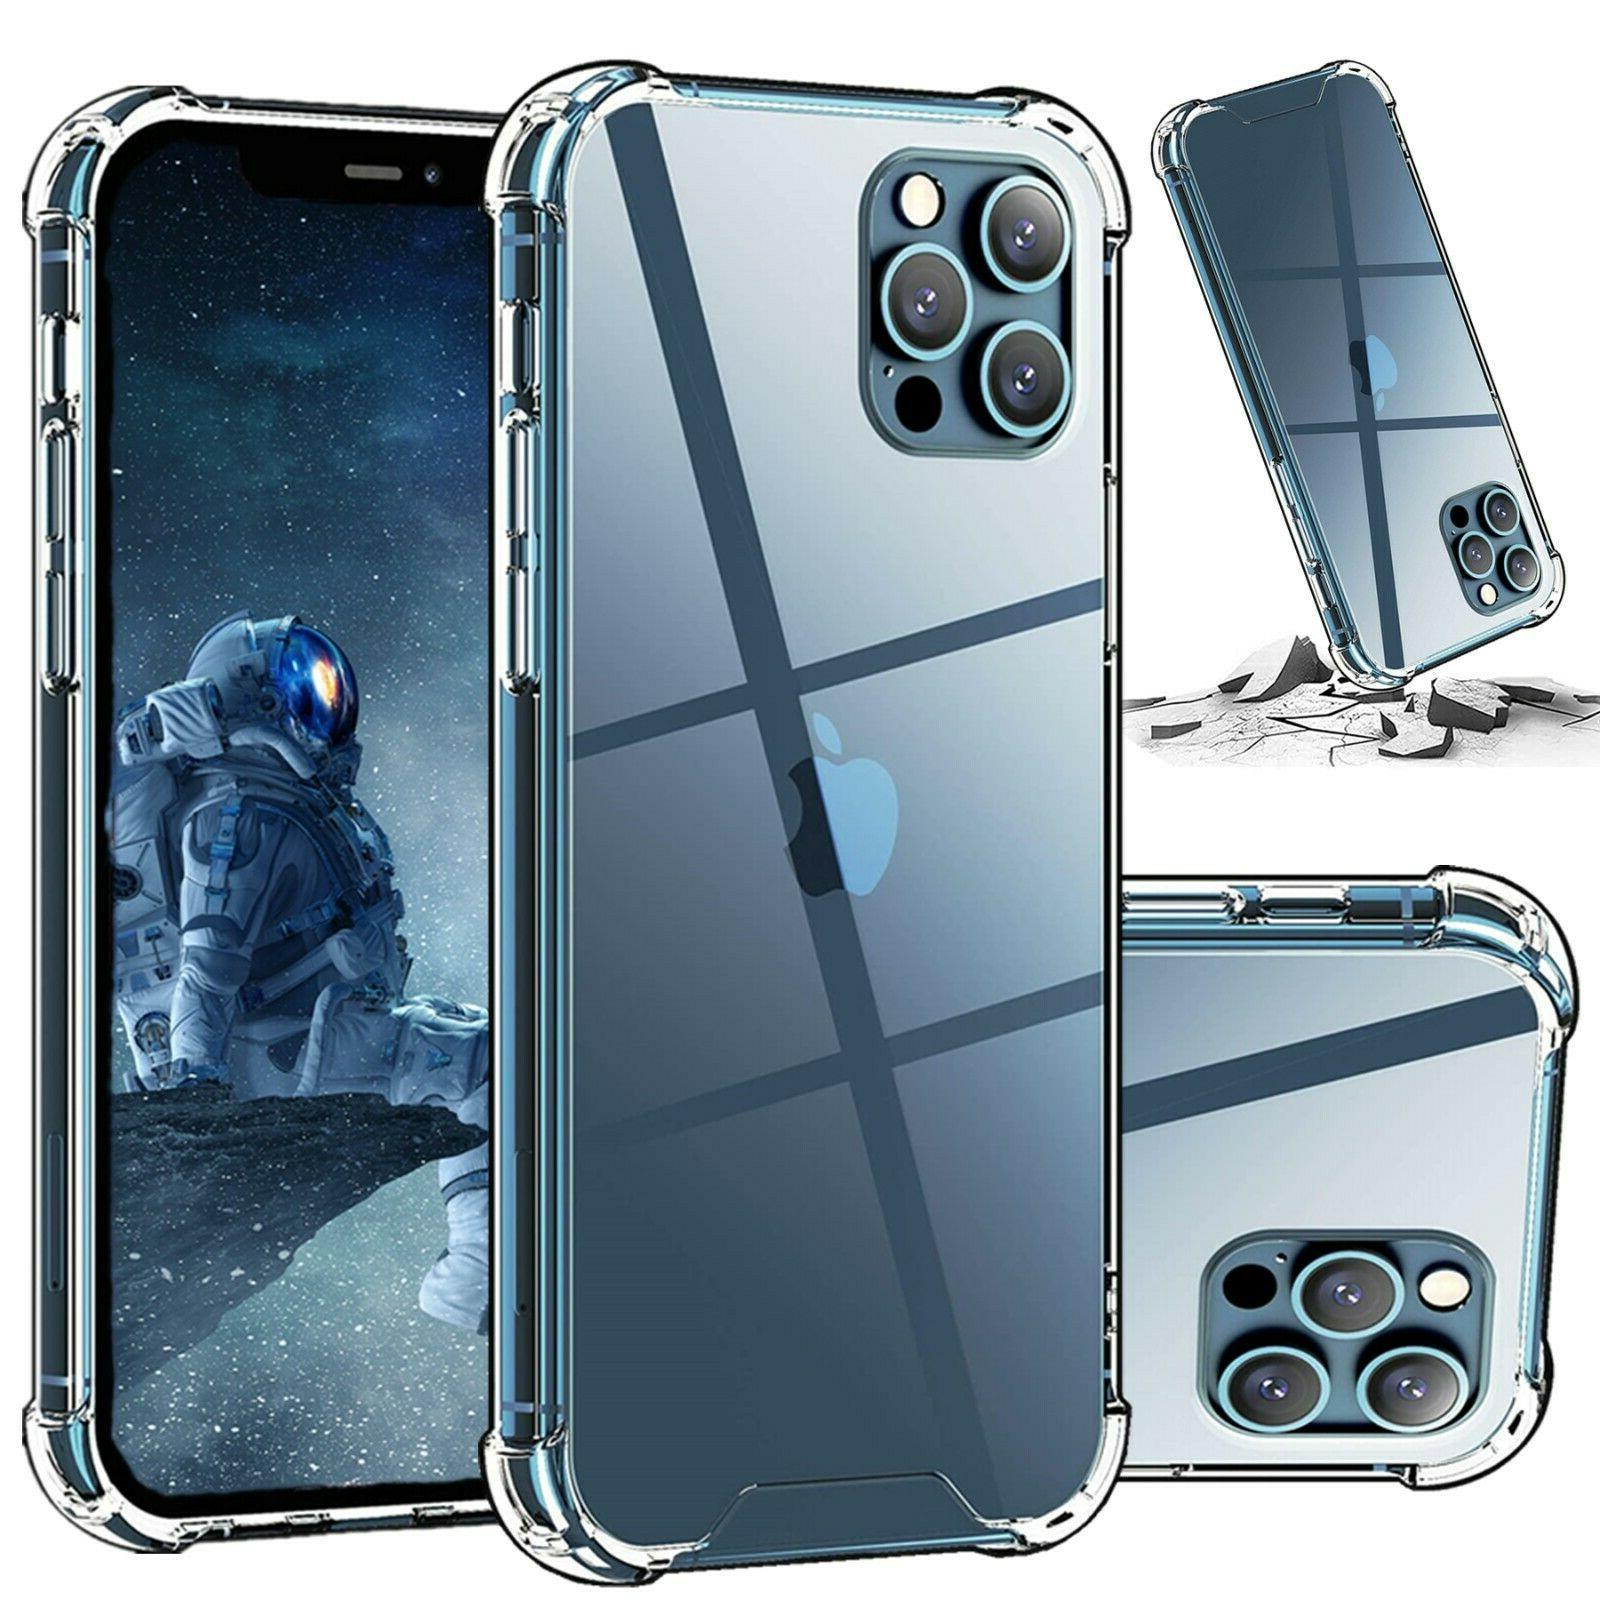 hybrid shockproof thin clear tpu bumper case